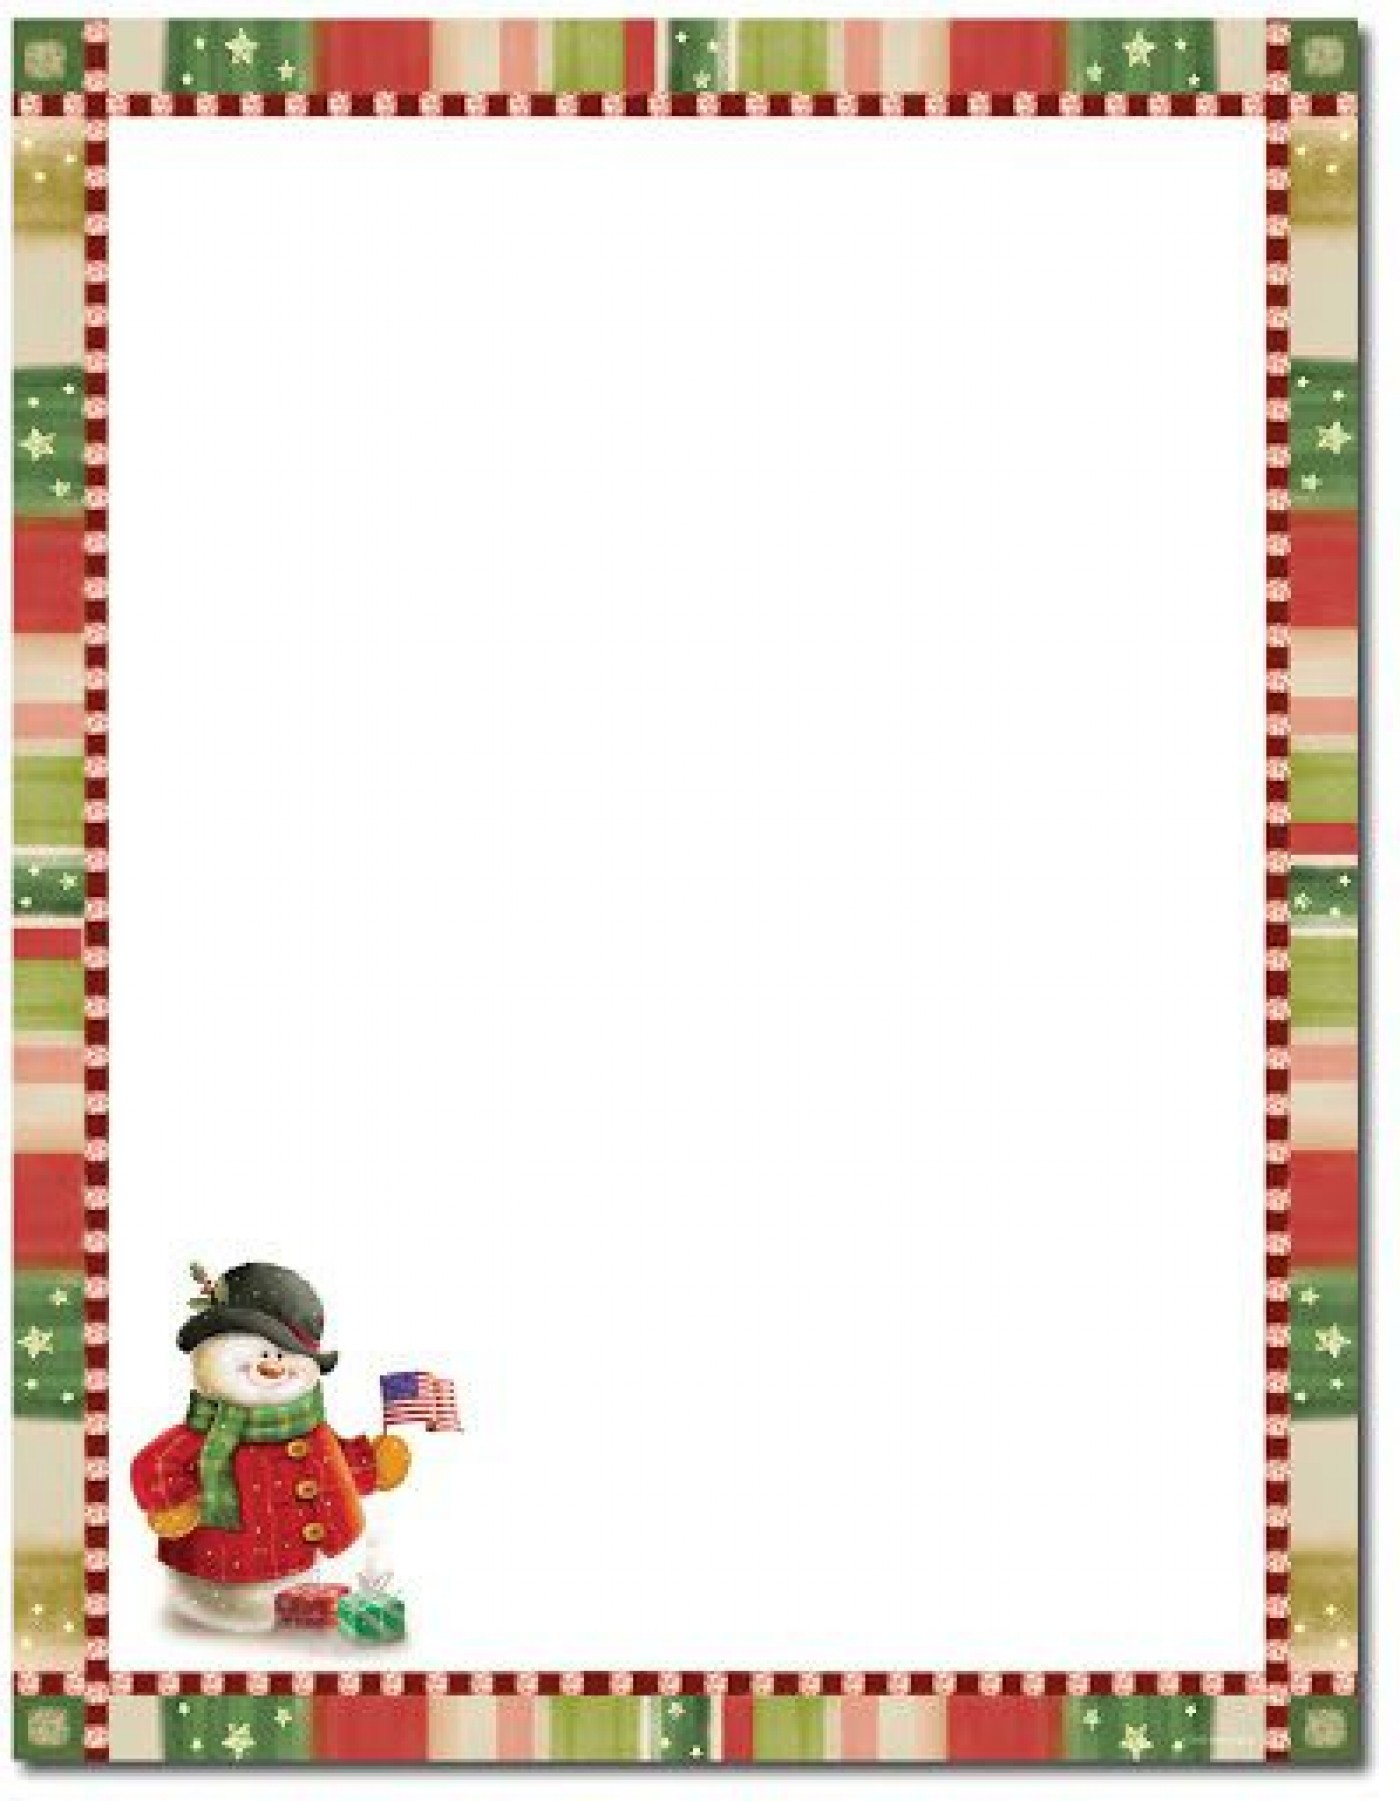 004 Unforgettable Christma Stationery Template Word Free Inspiration  Religiou For Downloadable1400